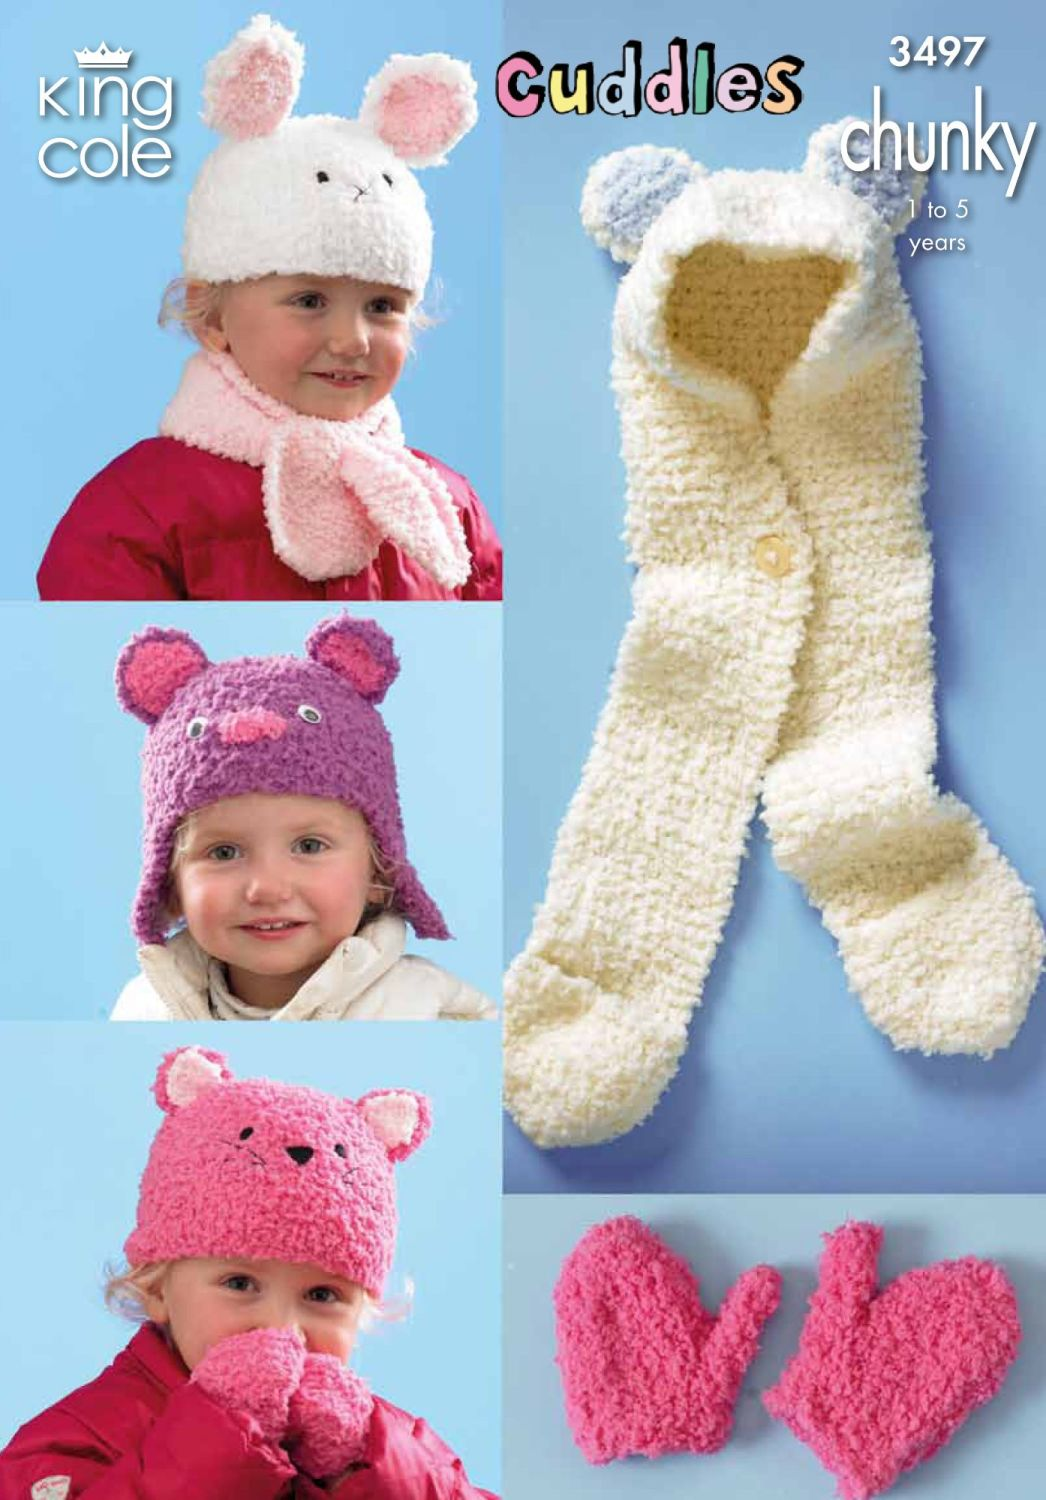 3497 Knitting Pattern Cuddles Chunky - Hats, Scarfs & Mittens 1-5 yrs